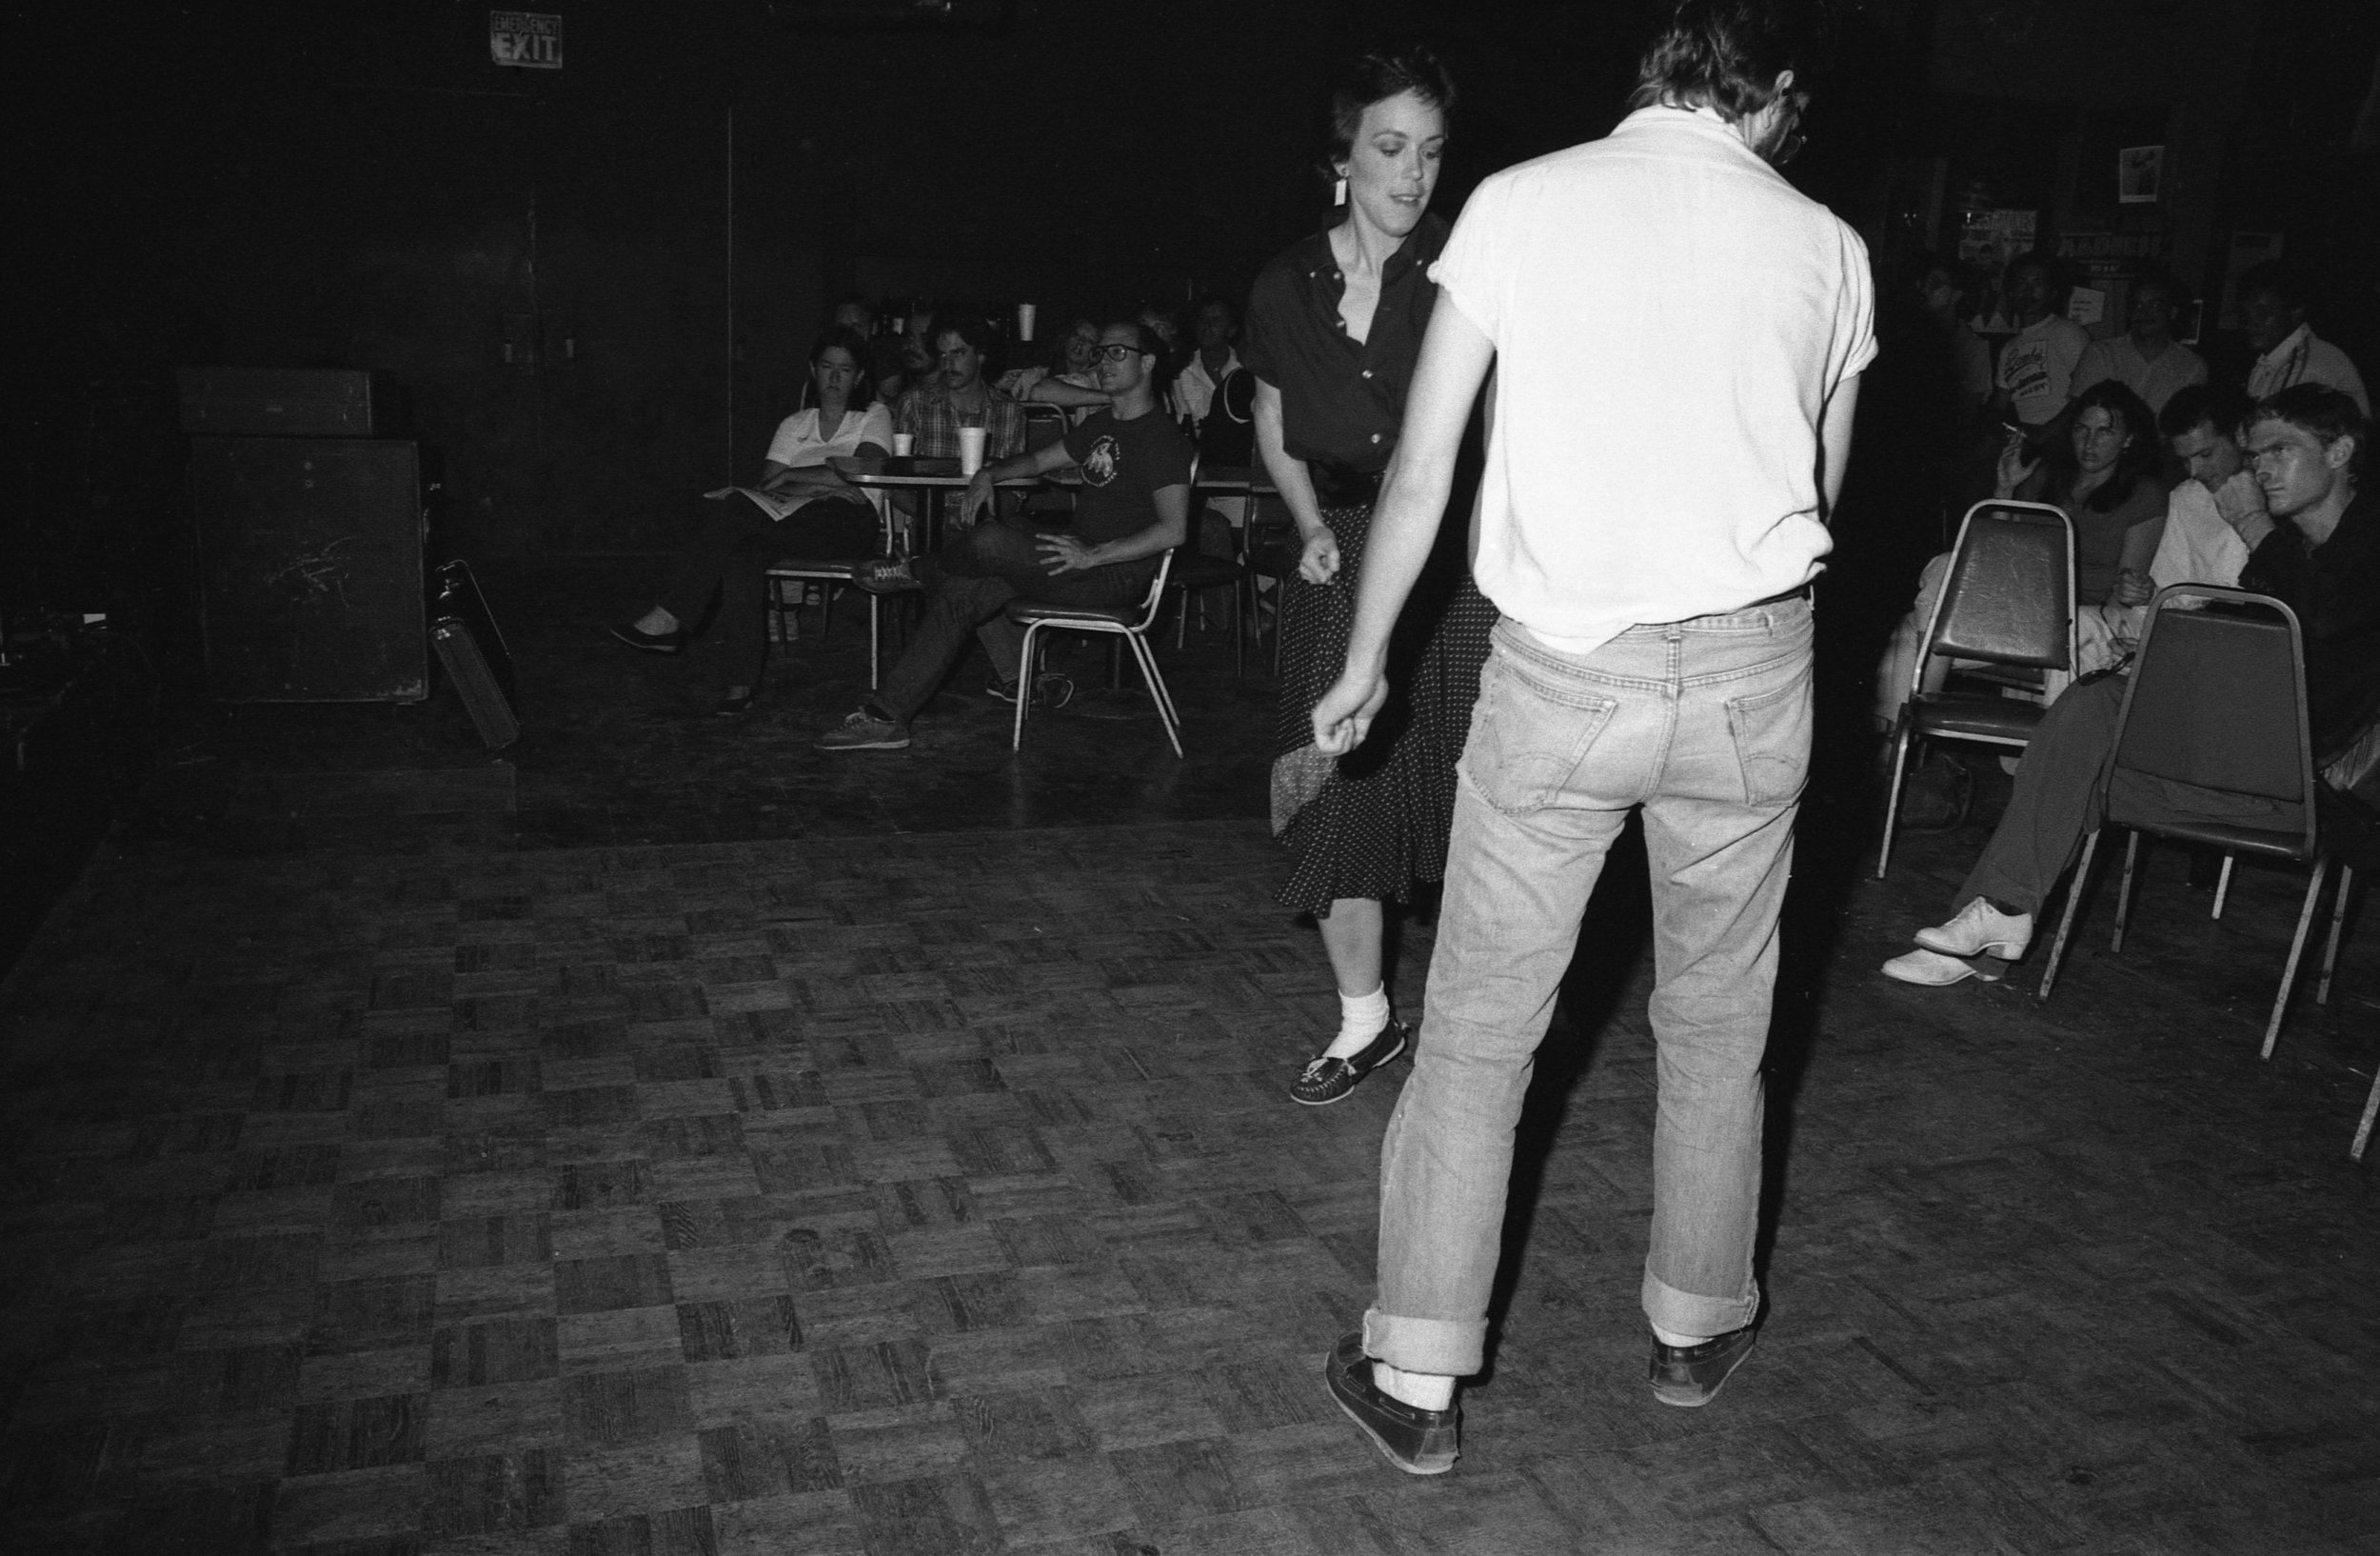 Katie and Tom charm the crowd at the On Klub, Los Angeles. About 1981.